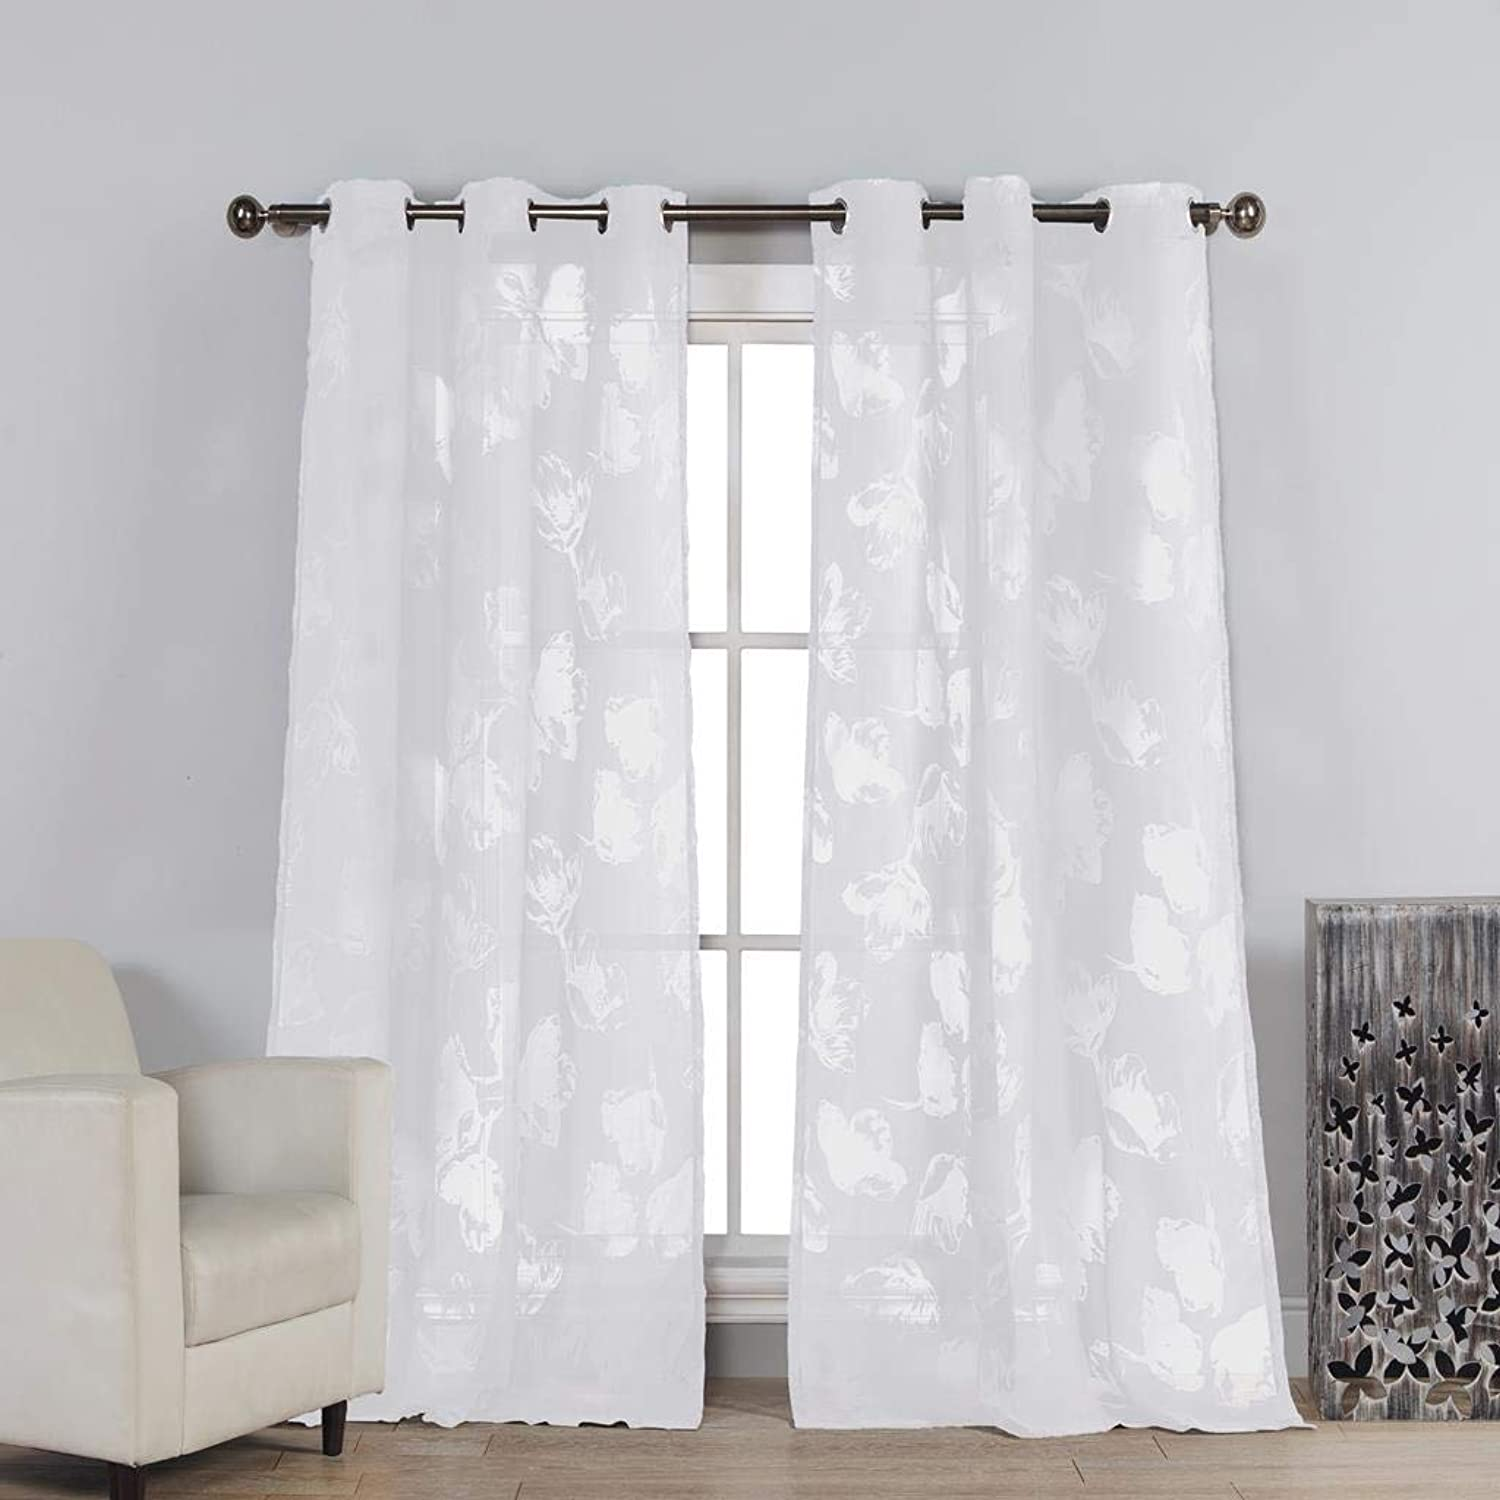 Kensie - Aster Floral Burnout Semi Sheer Grommet Top Window Curtains for Living Room & Bedroom - Assorted colors - Set of 2 Panels (54 X 84 Inch - White)